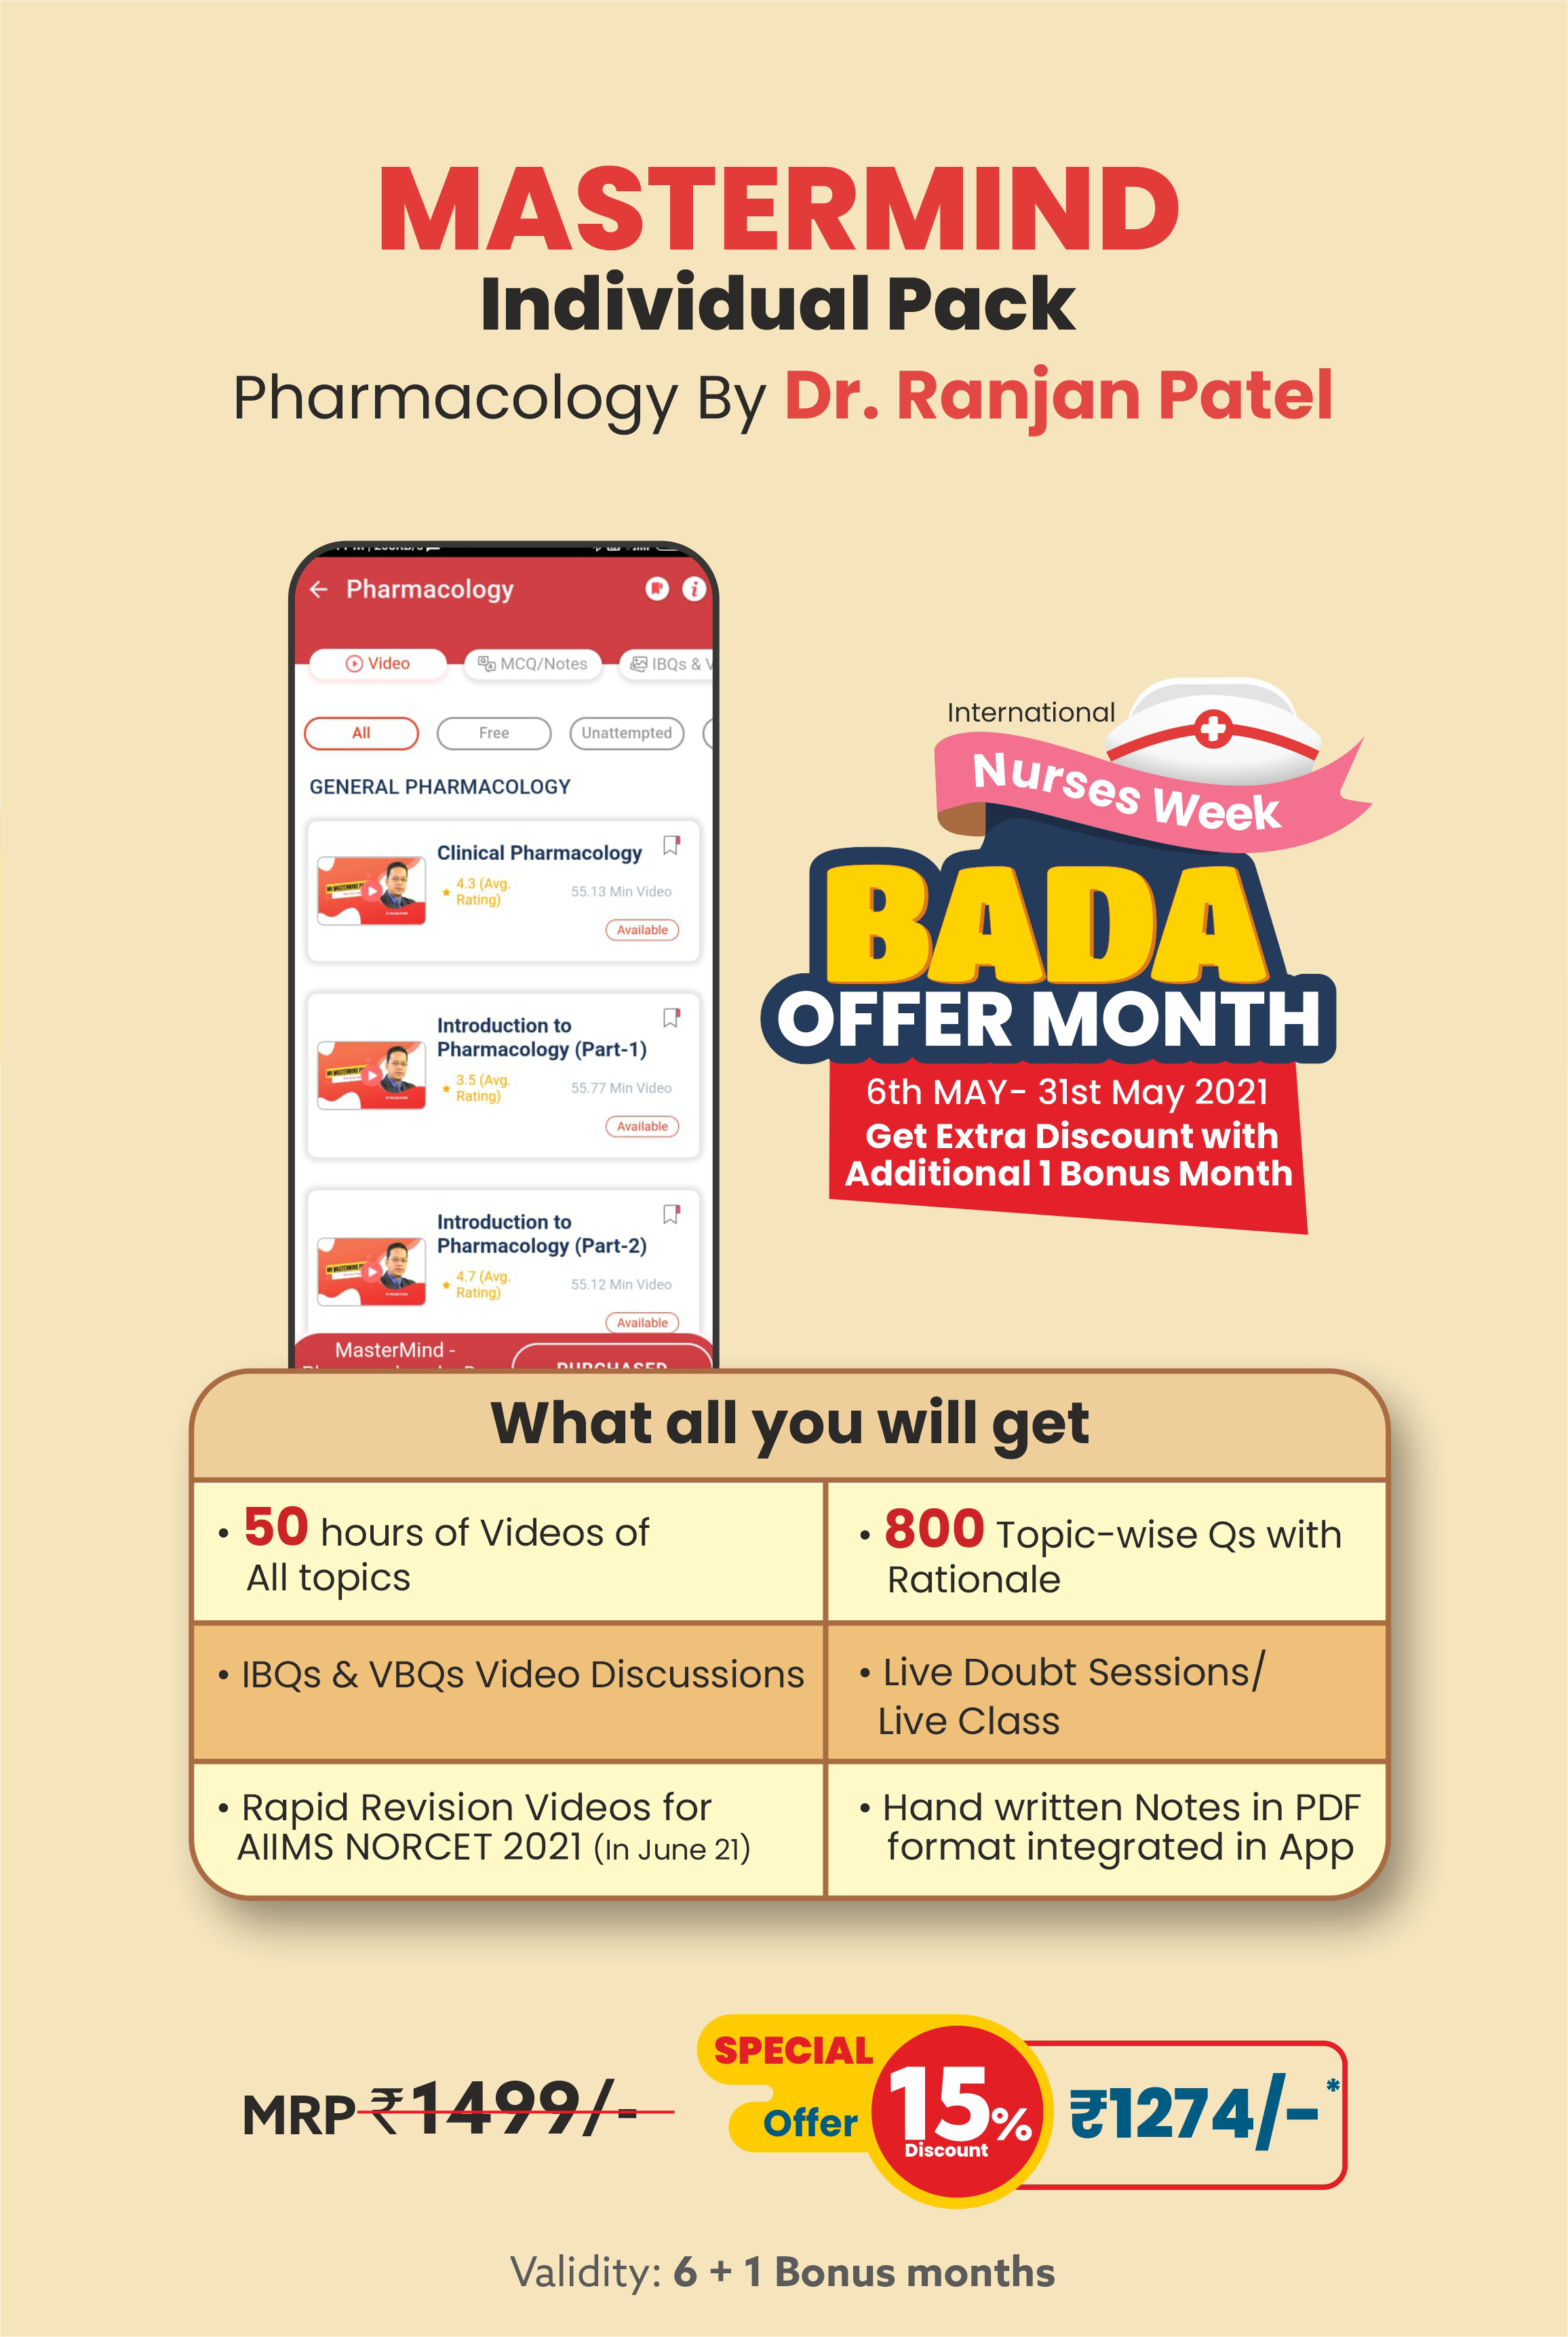 Nurses week - Bada Offer Month Individual Pack-Dr. Ranjan Patel